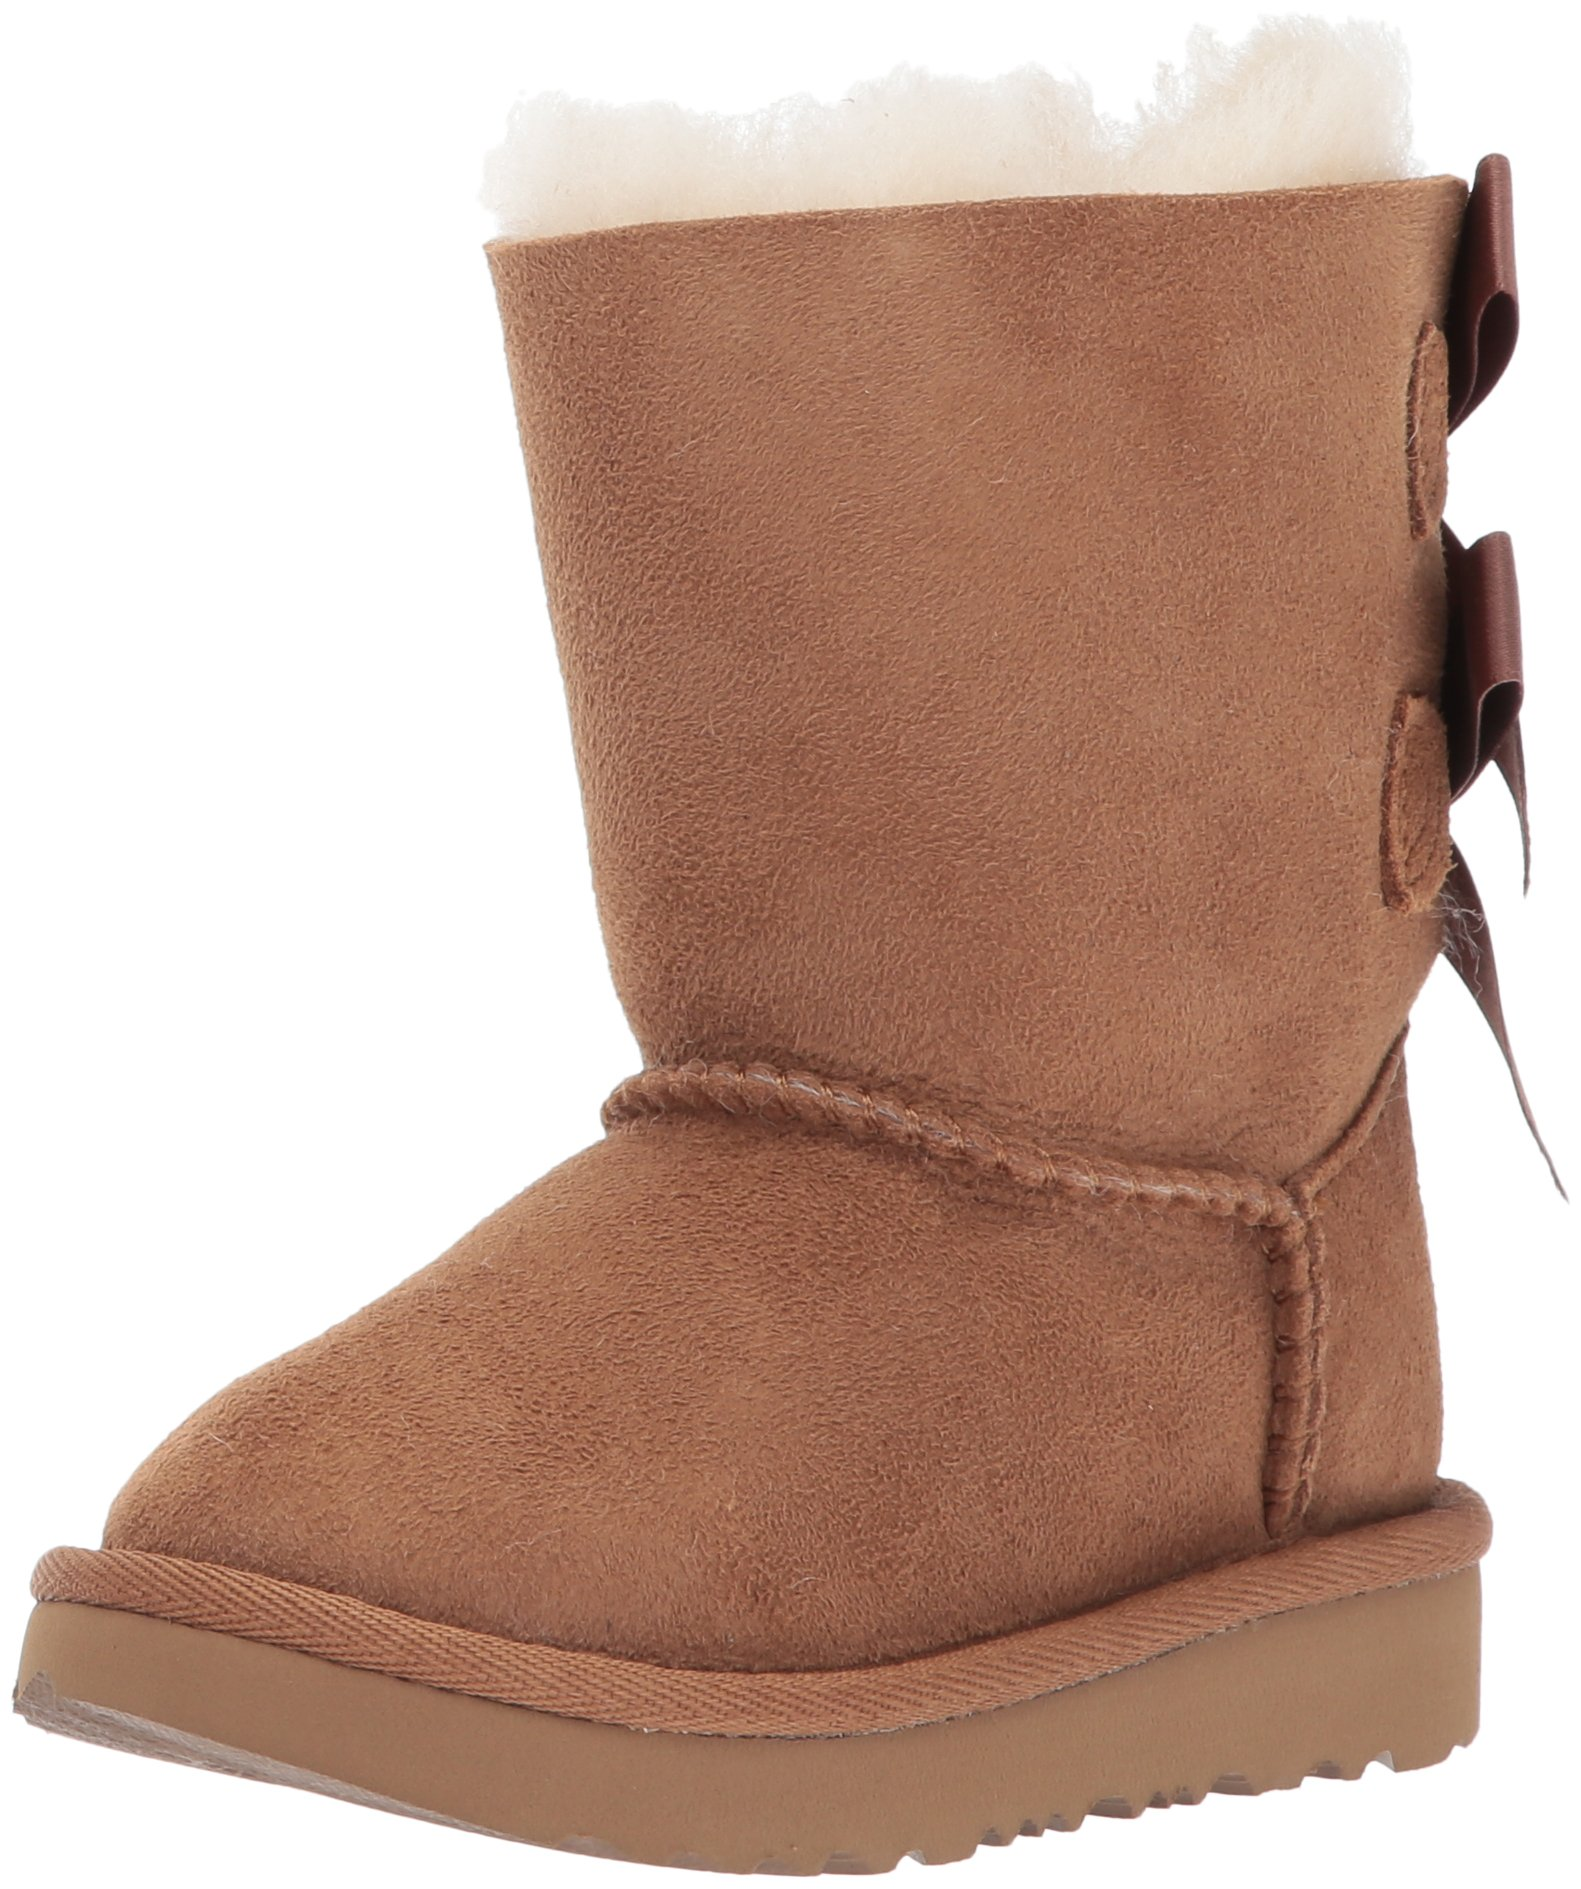 UGG Girls T Bailey Bow II Fashion Boot, Chestnut, 12 M US Little Kid